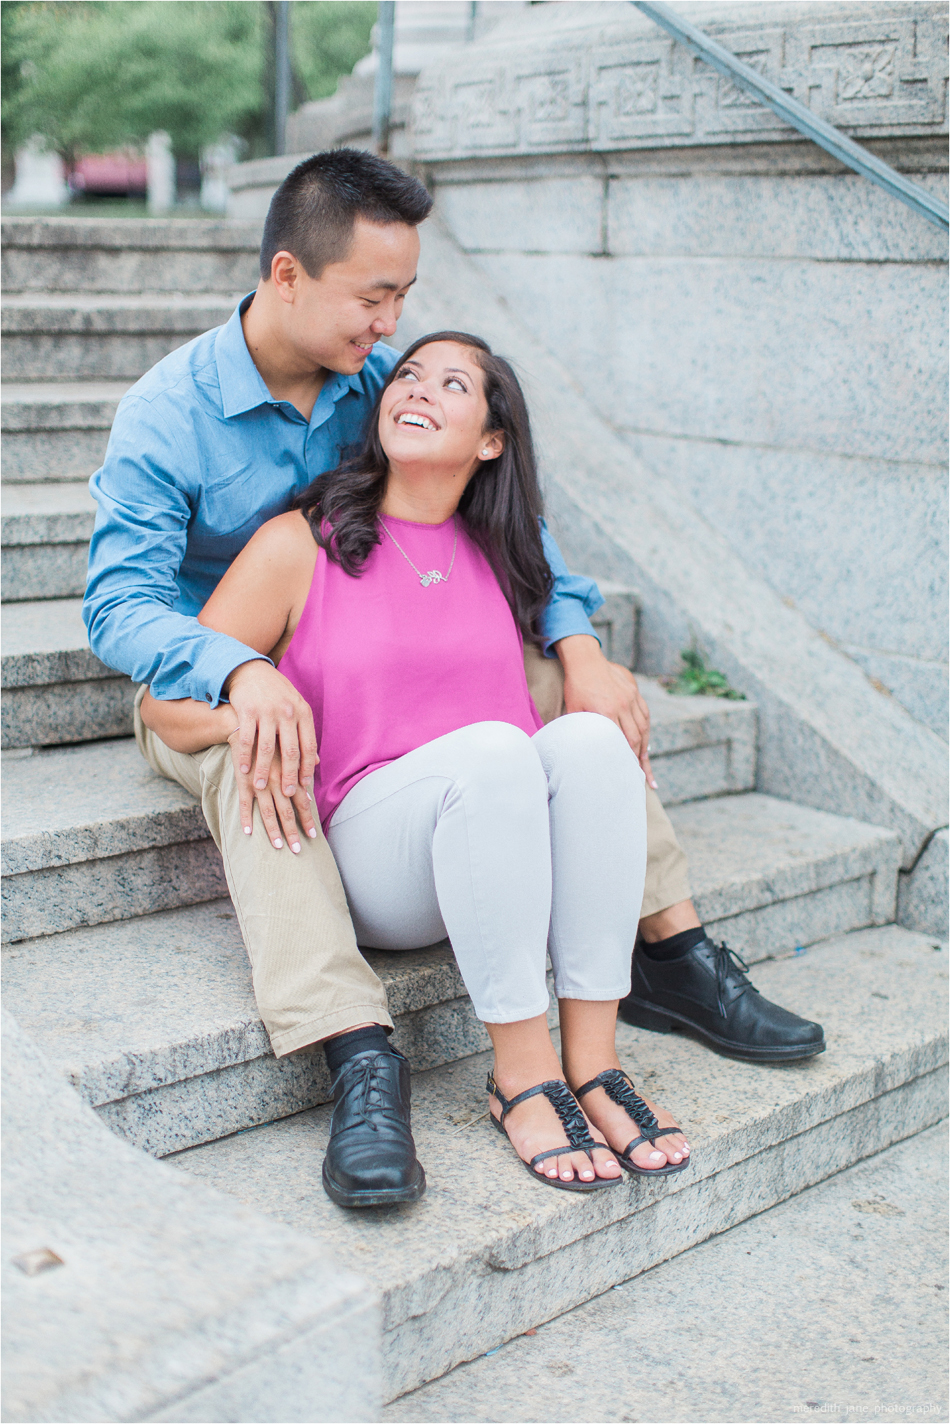 meredith_jane_photography_film_cape_cod_boston__common_public_garden_engagement_wedding_photographer_photo_0577